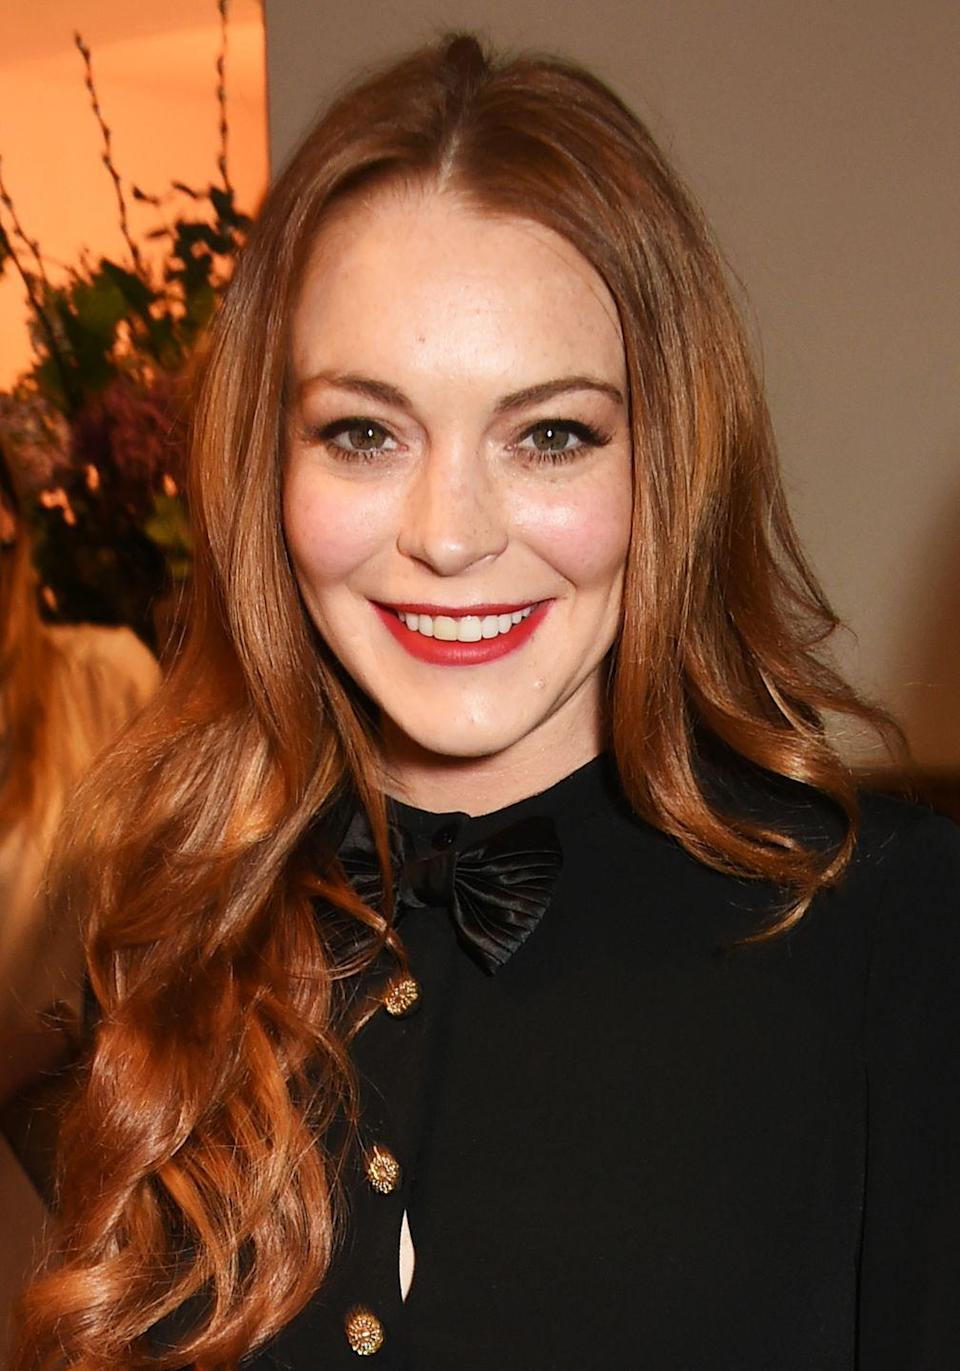 "<p>While celebrating her 27th birthday in rehab, Lohan replied to a fan who wished her a happy birthday who <a href=""http://www.dailymail.co.uk/tvshowbiz/article-2355057/Lindsay-Lohan-pans-2007-horror-movie-I-Know-Who-Killed-Me-birthday-Twitter-session-rehab.html"" rel=""nofollow noopener"" target=""_blank"" data-ylk=""slk:said"" class=""link rapid-noclick-resp"">said</a>, ""I seriously watched <em>I Know Who Killed Me</em> twice last night."" The actress then responded, ""Two times too many."" </p>"